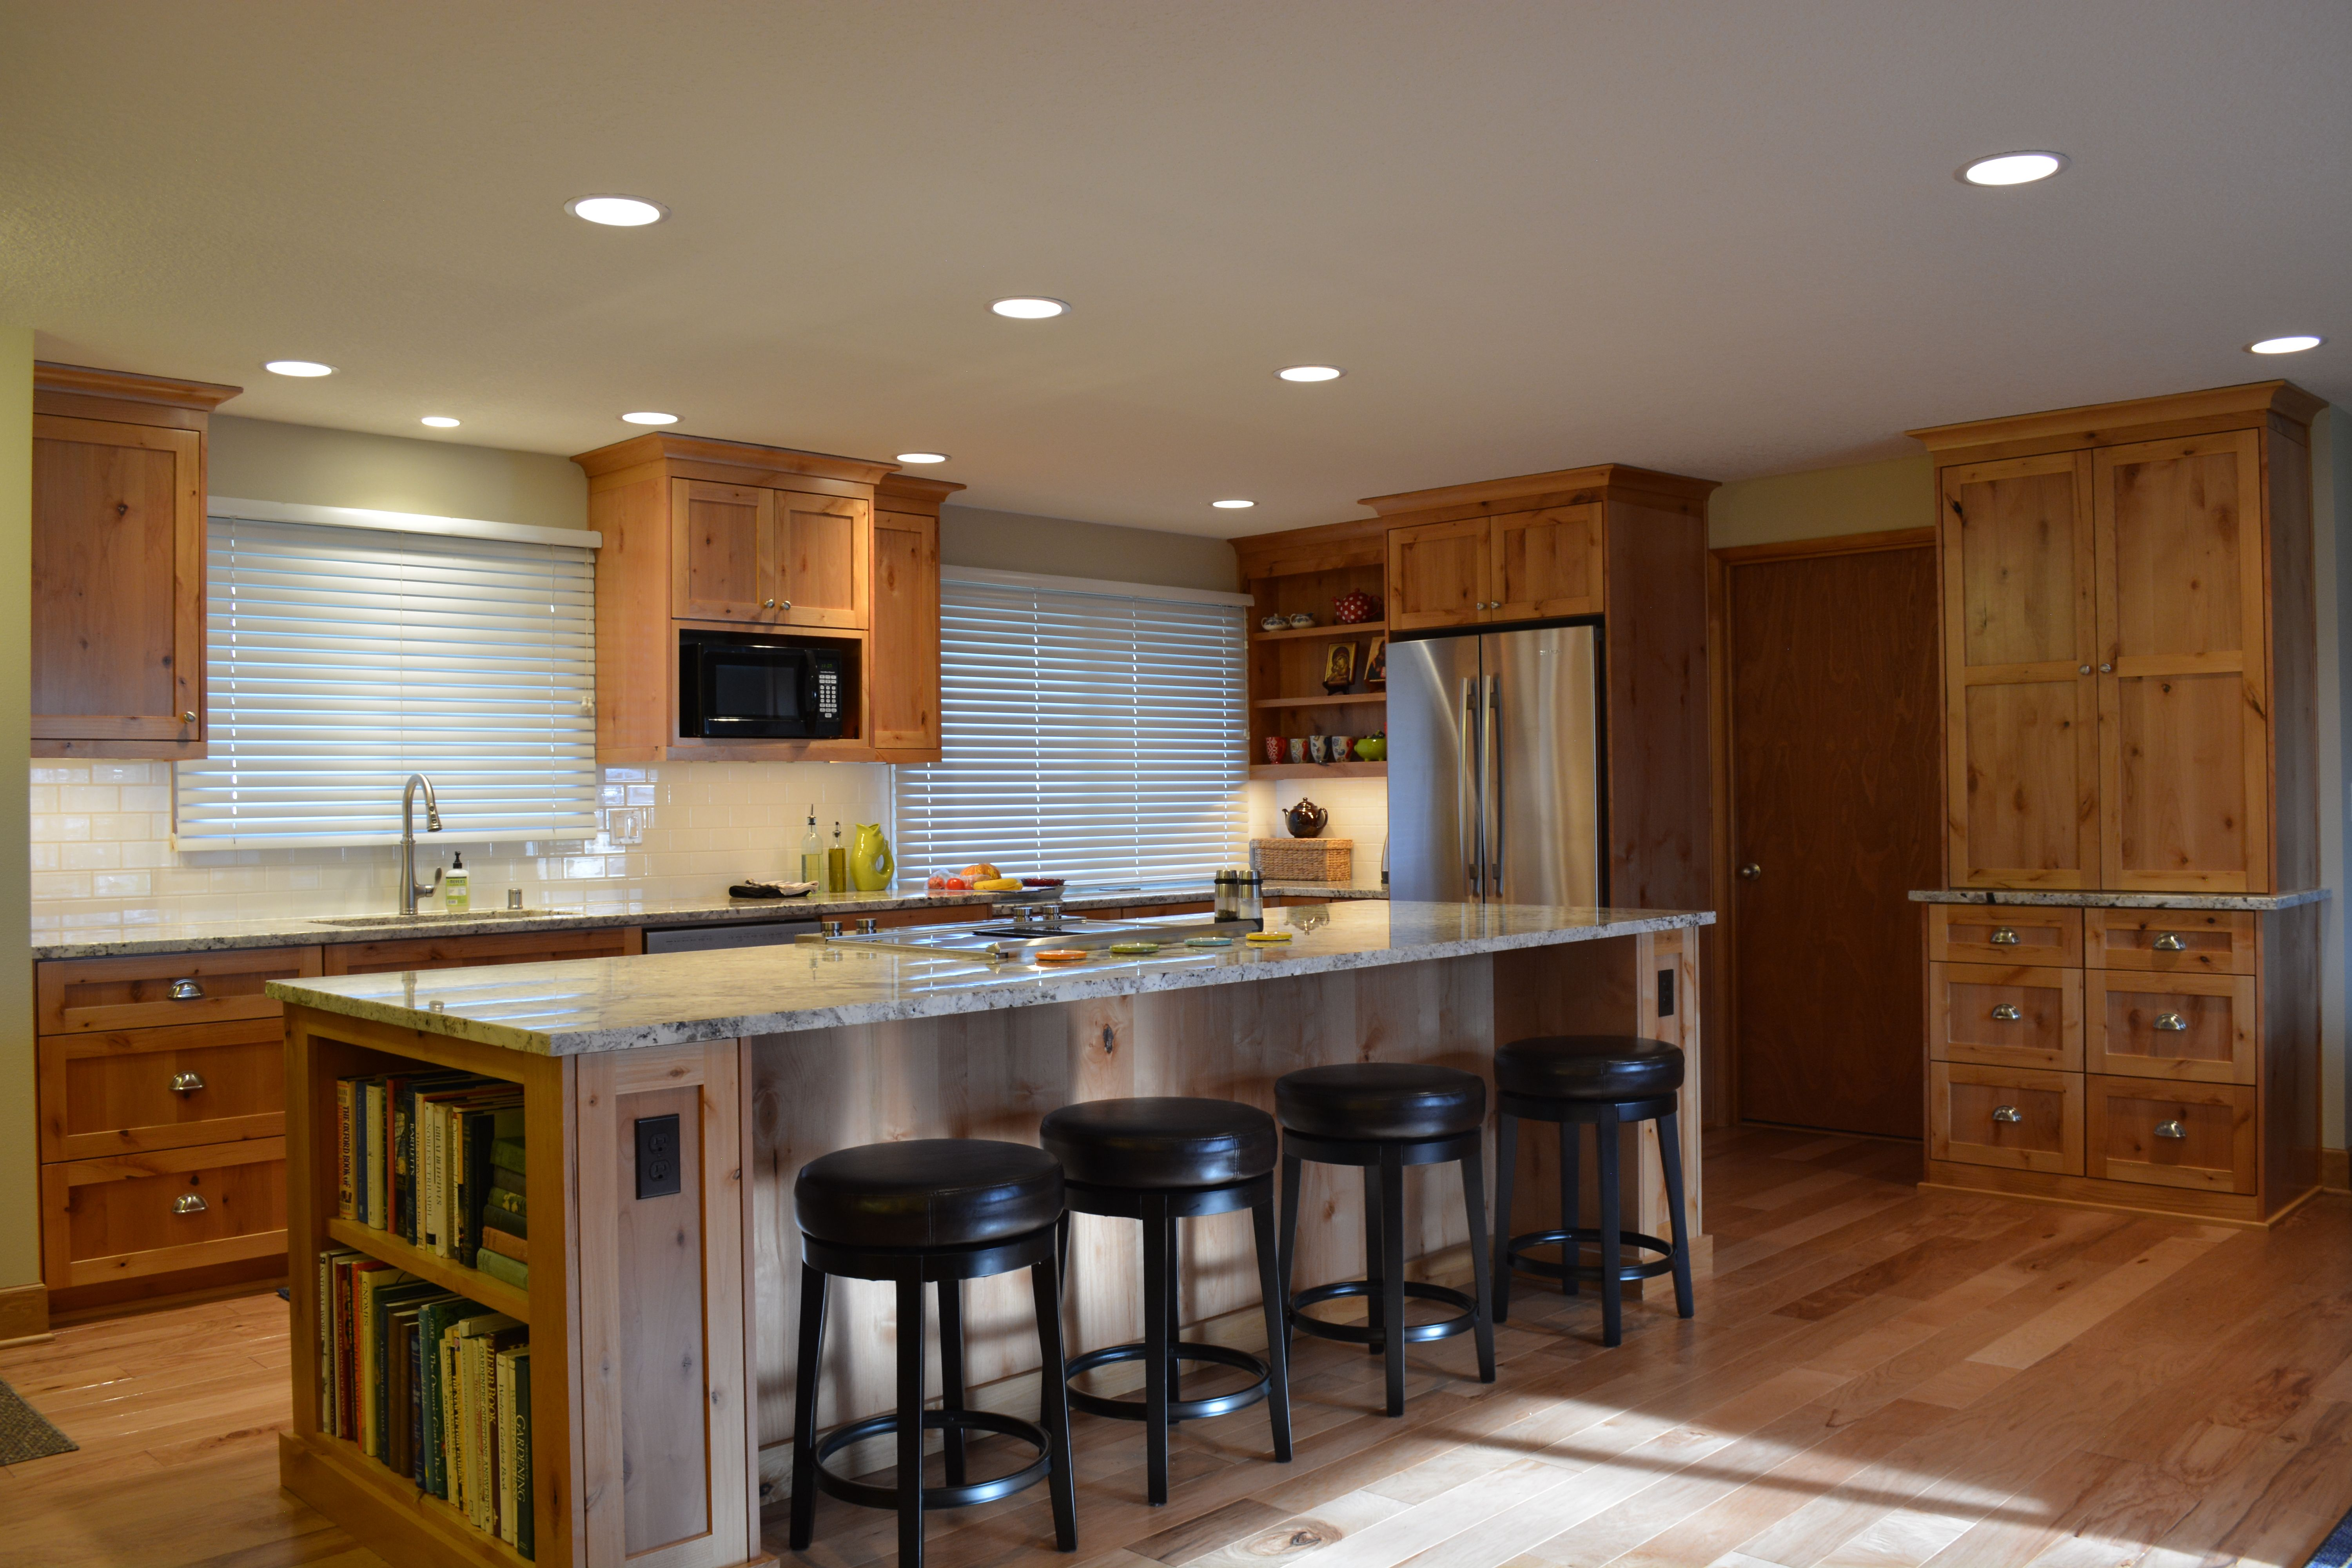 Knotty Alder Cabinets with a clear finish, Granite countertop